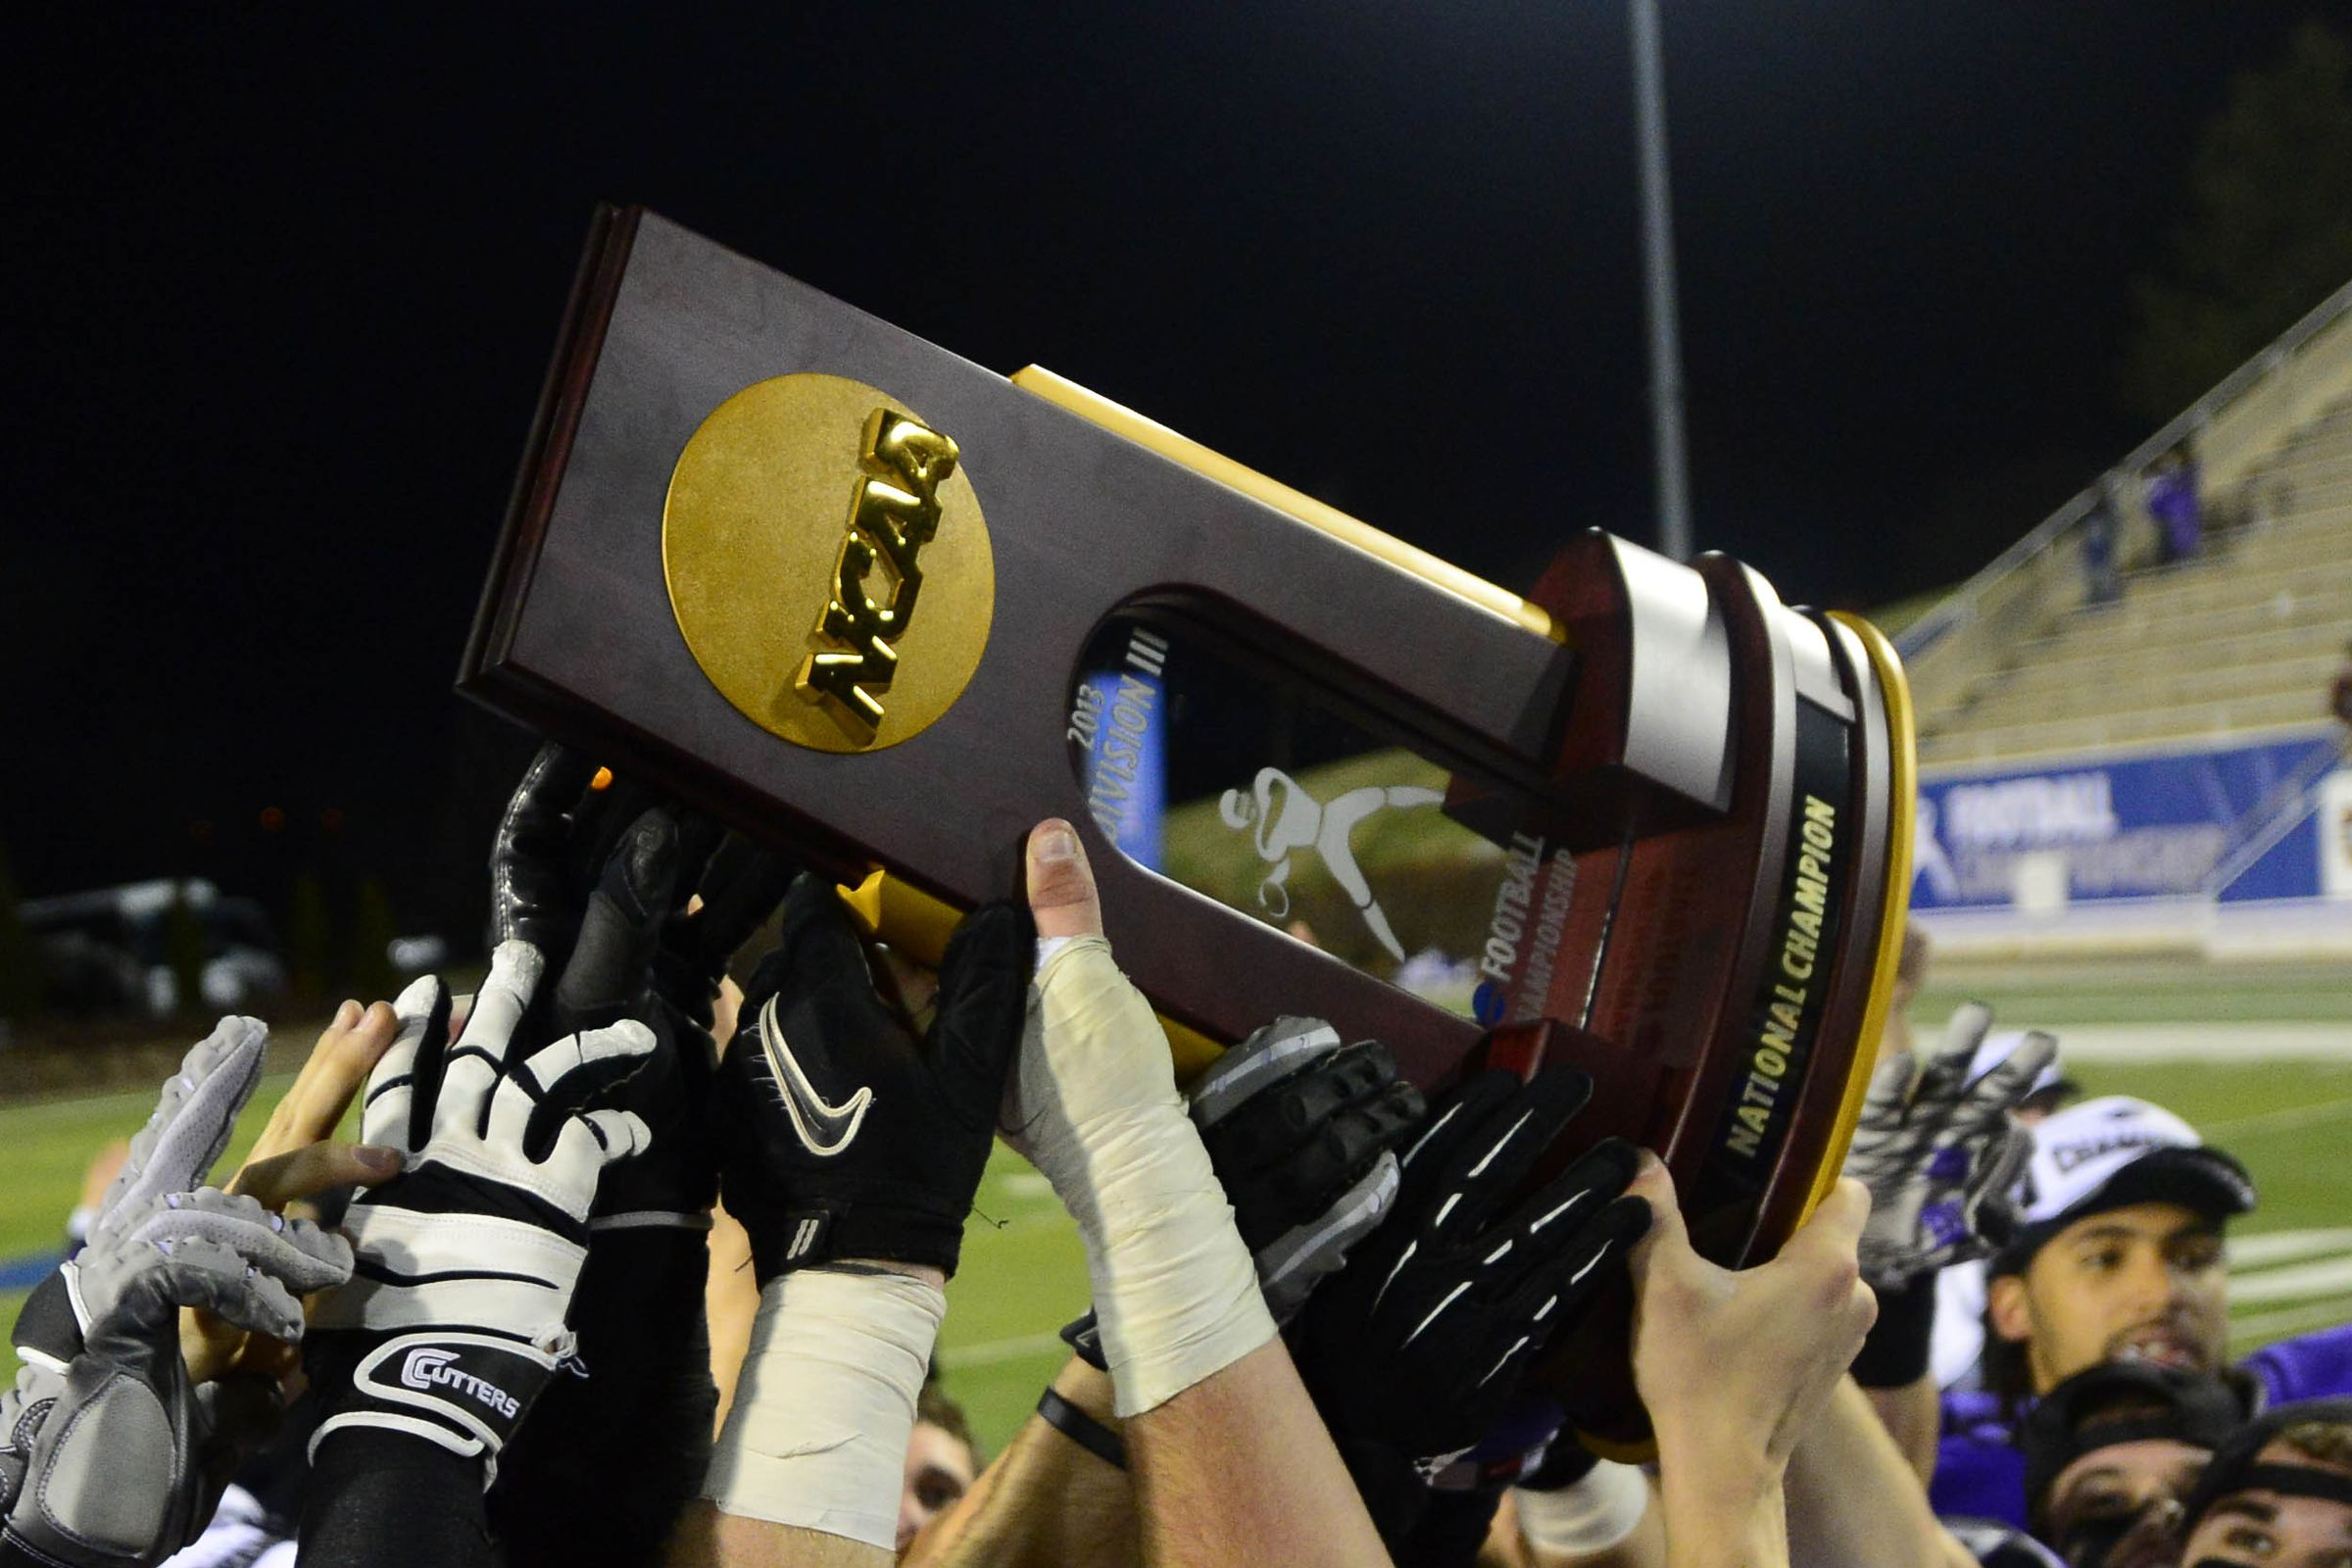 Tommies Fall to Mount Union in NCAA Division III Football Championship